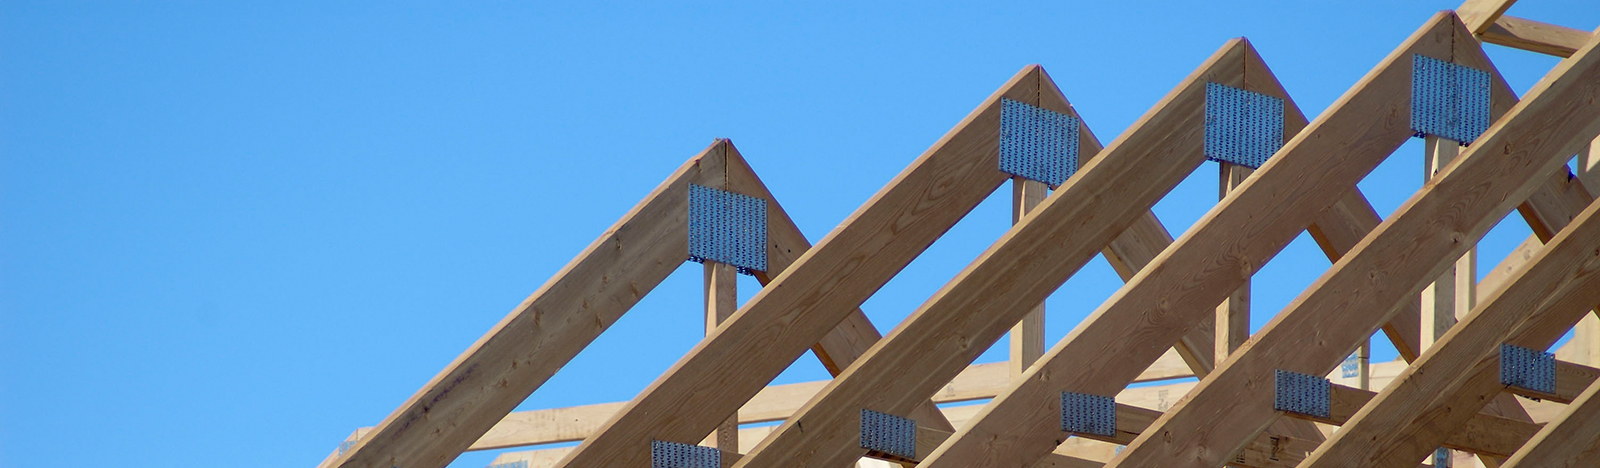 Calco Roof Trusses In Geelong